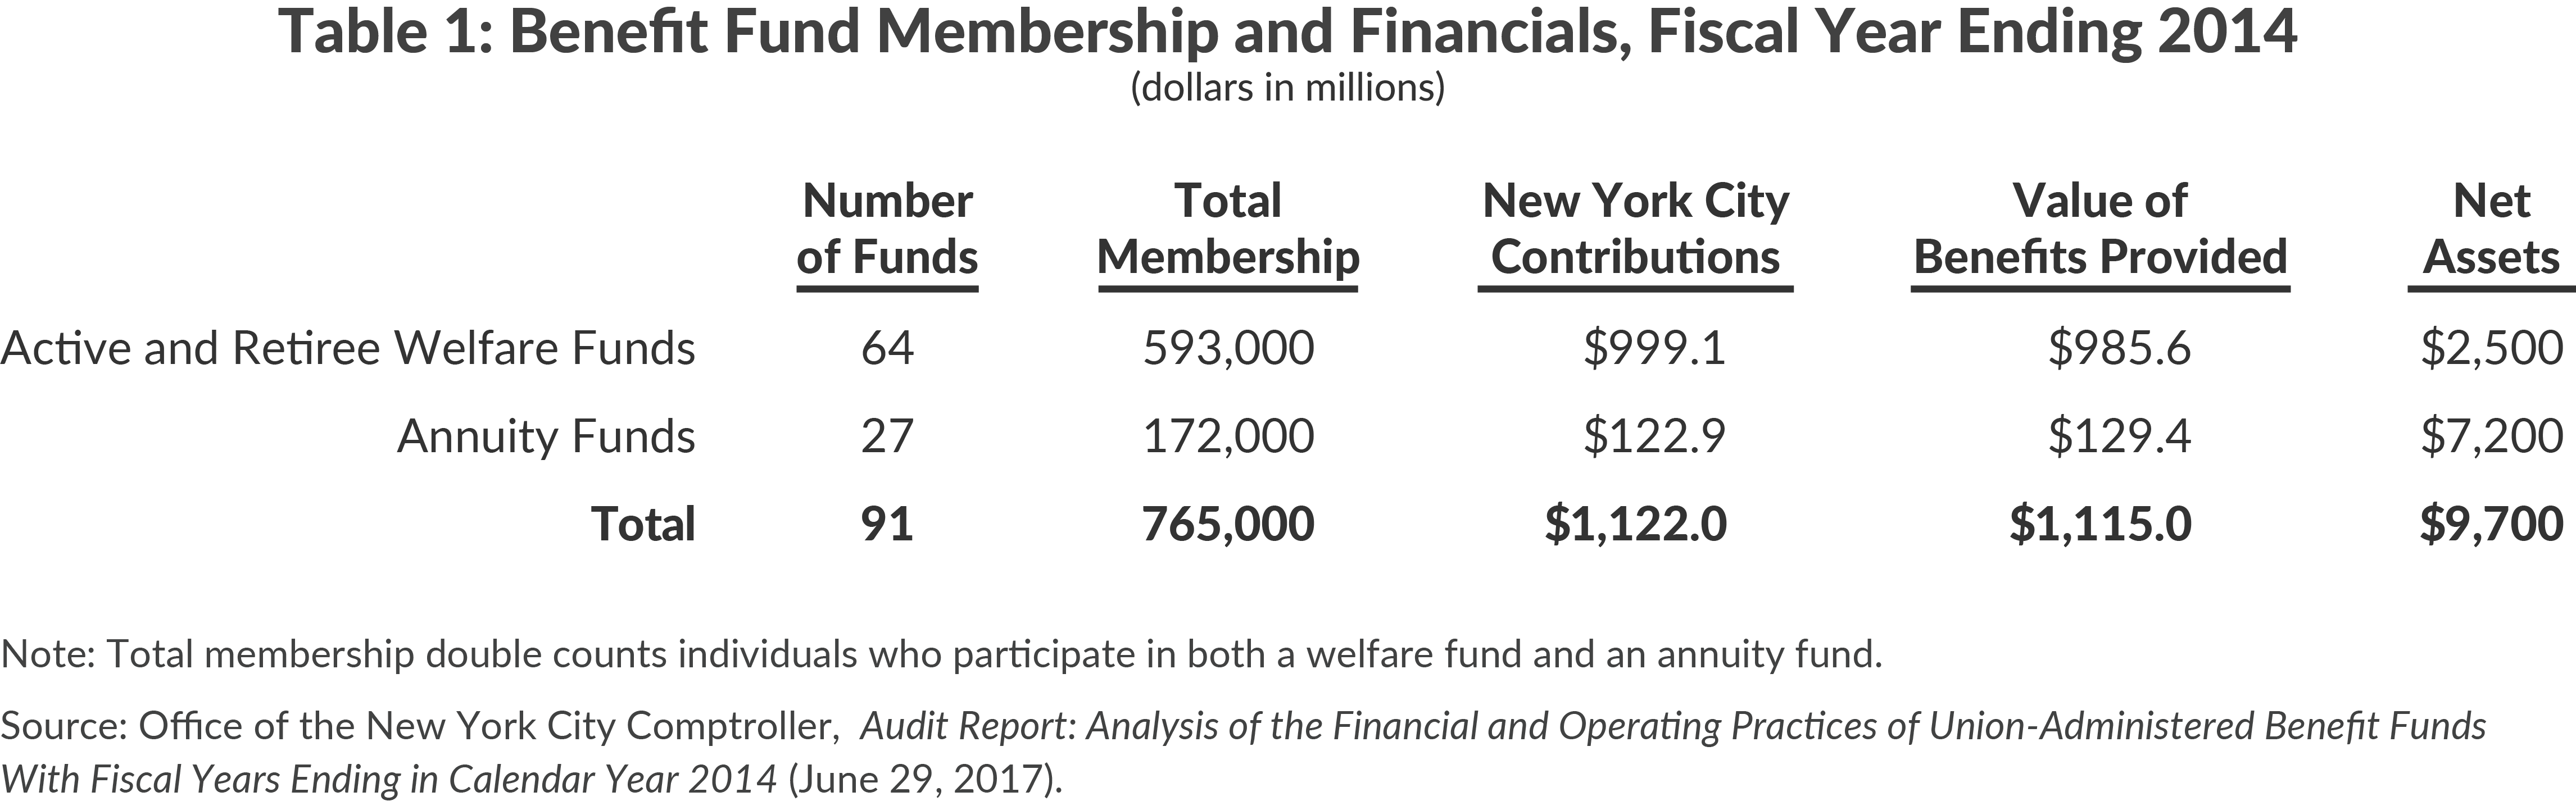 Table 1: Benefit Fund Membership and Financials, Fiscal Year Ending 2014